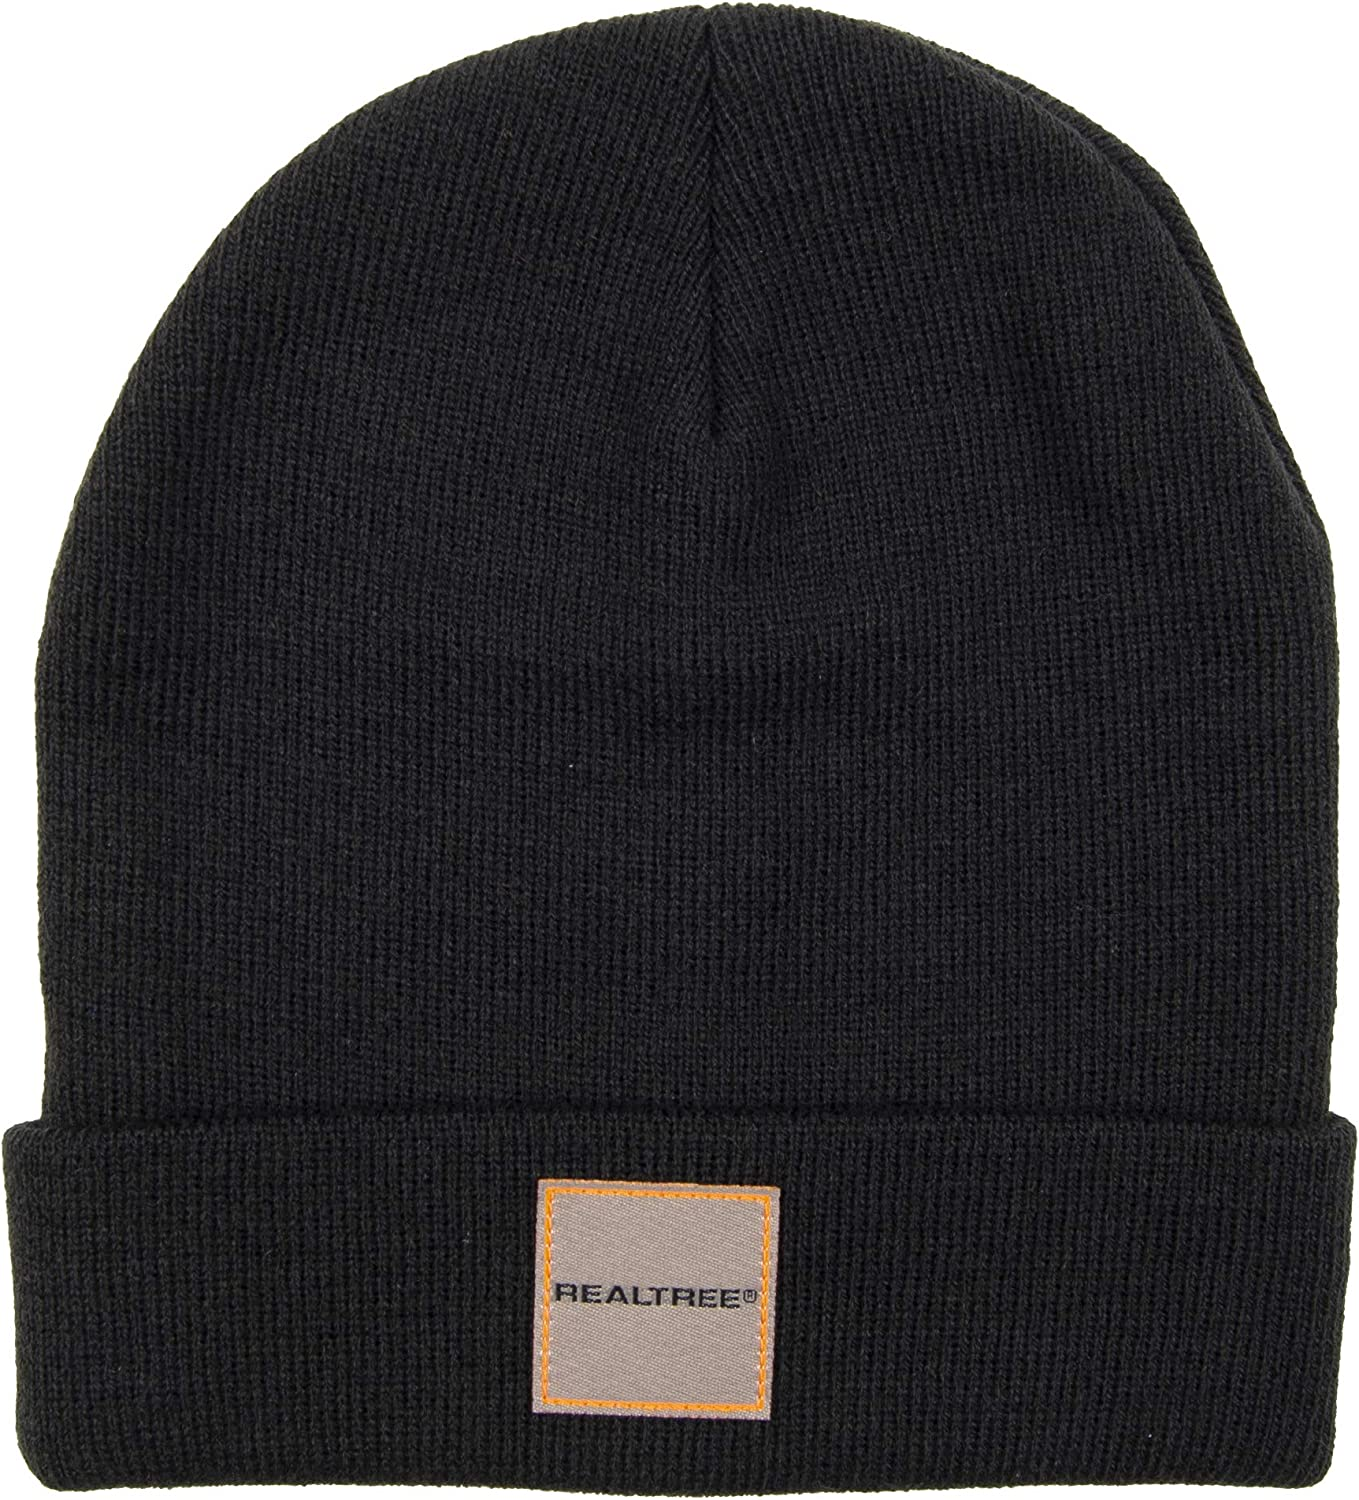 Real Tree Cash Long Beach Mall special price Men's Cold Weather Warm Hat Knit Beanie Black Winter